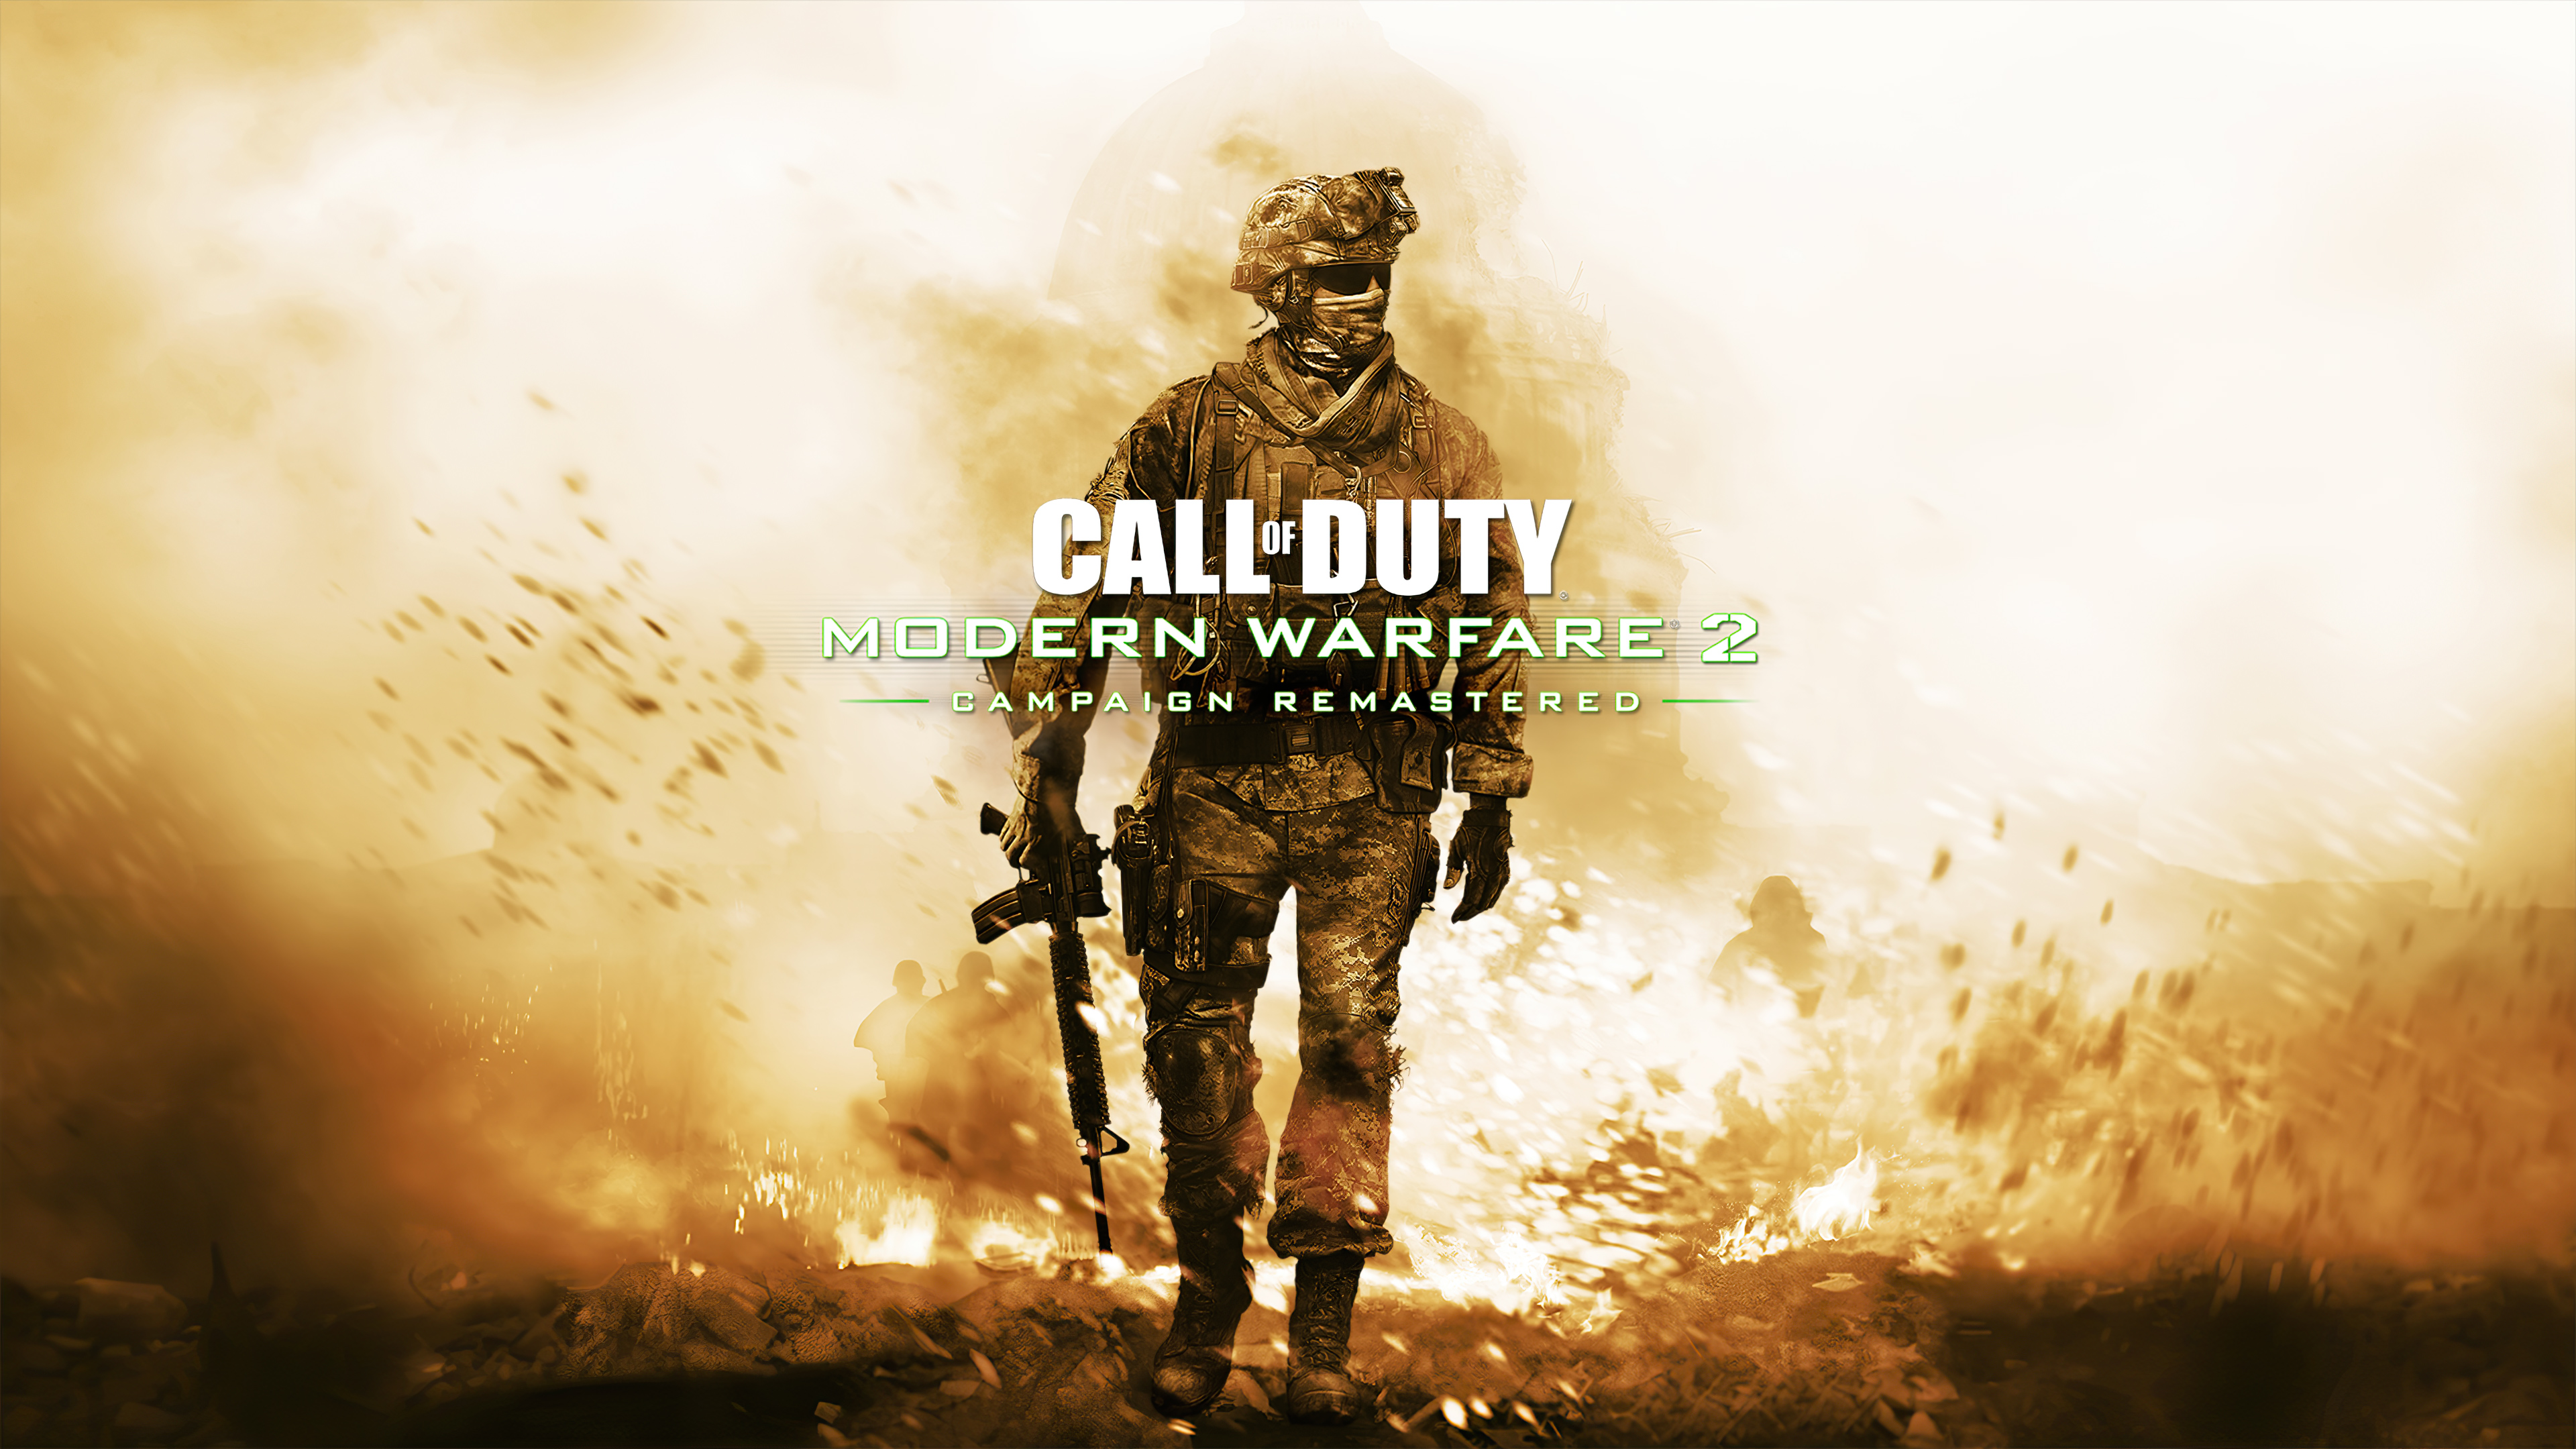 Call Of Duty Modern Warfare 2 Campaign Remastered 4k Hd Games 4k